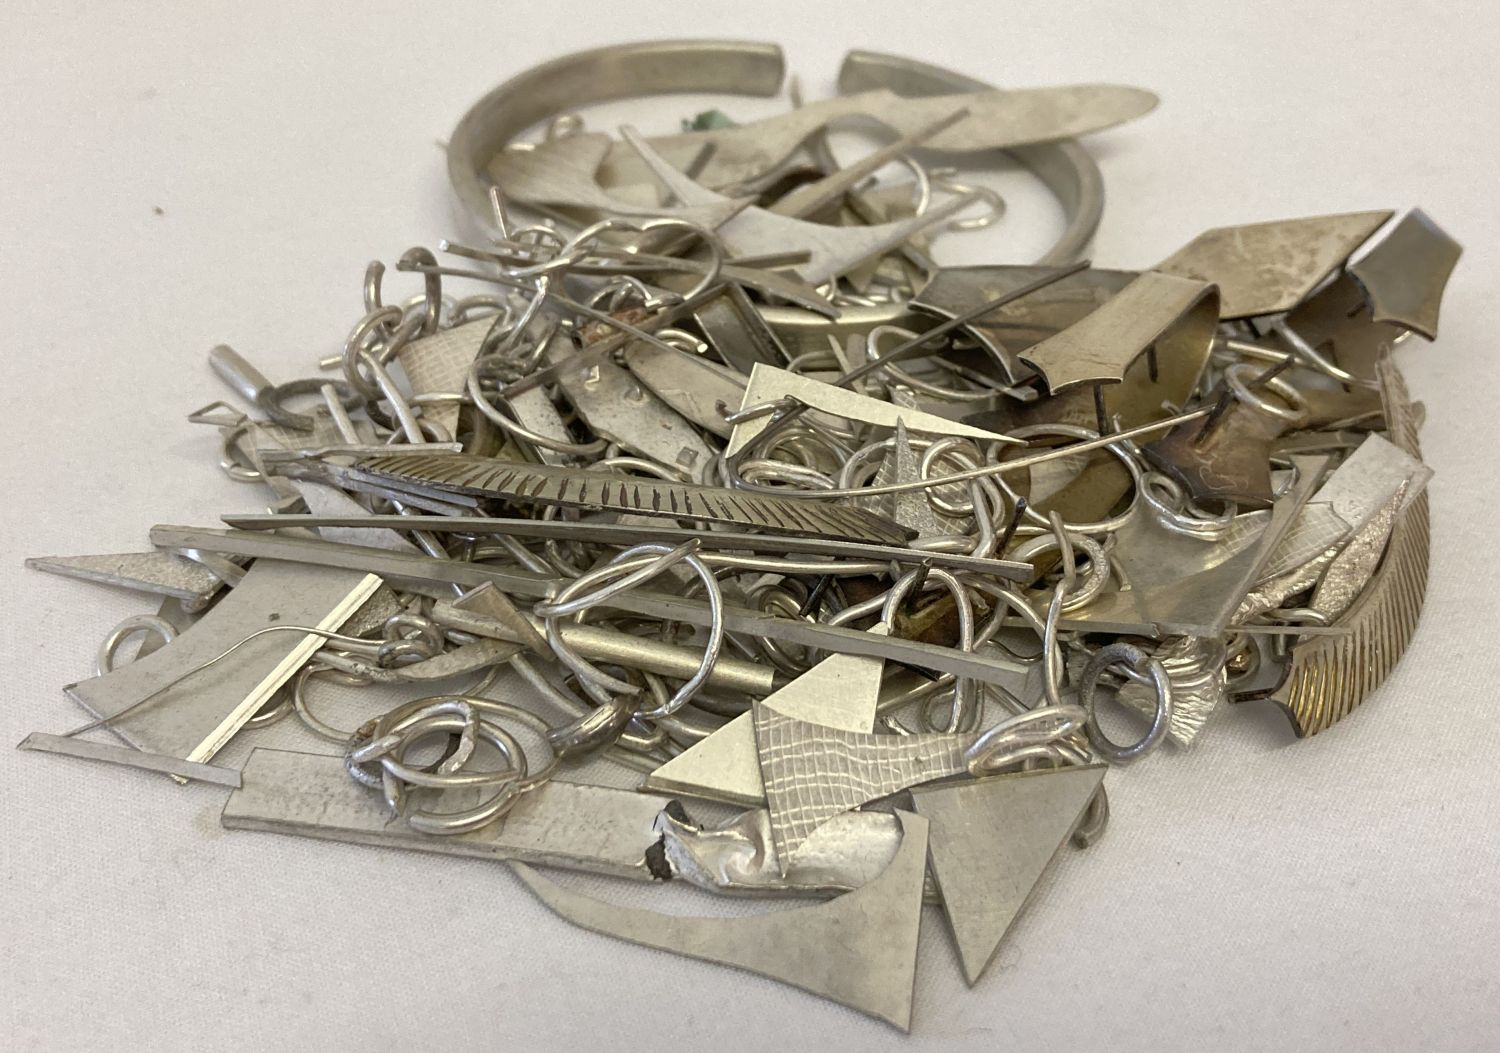 A bag of scrap silver pieces from a jewellery maker.